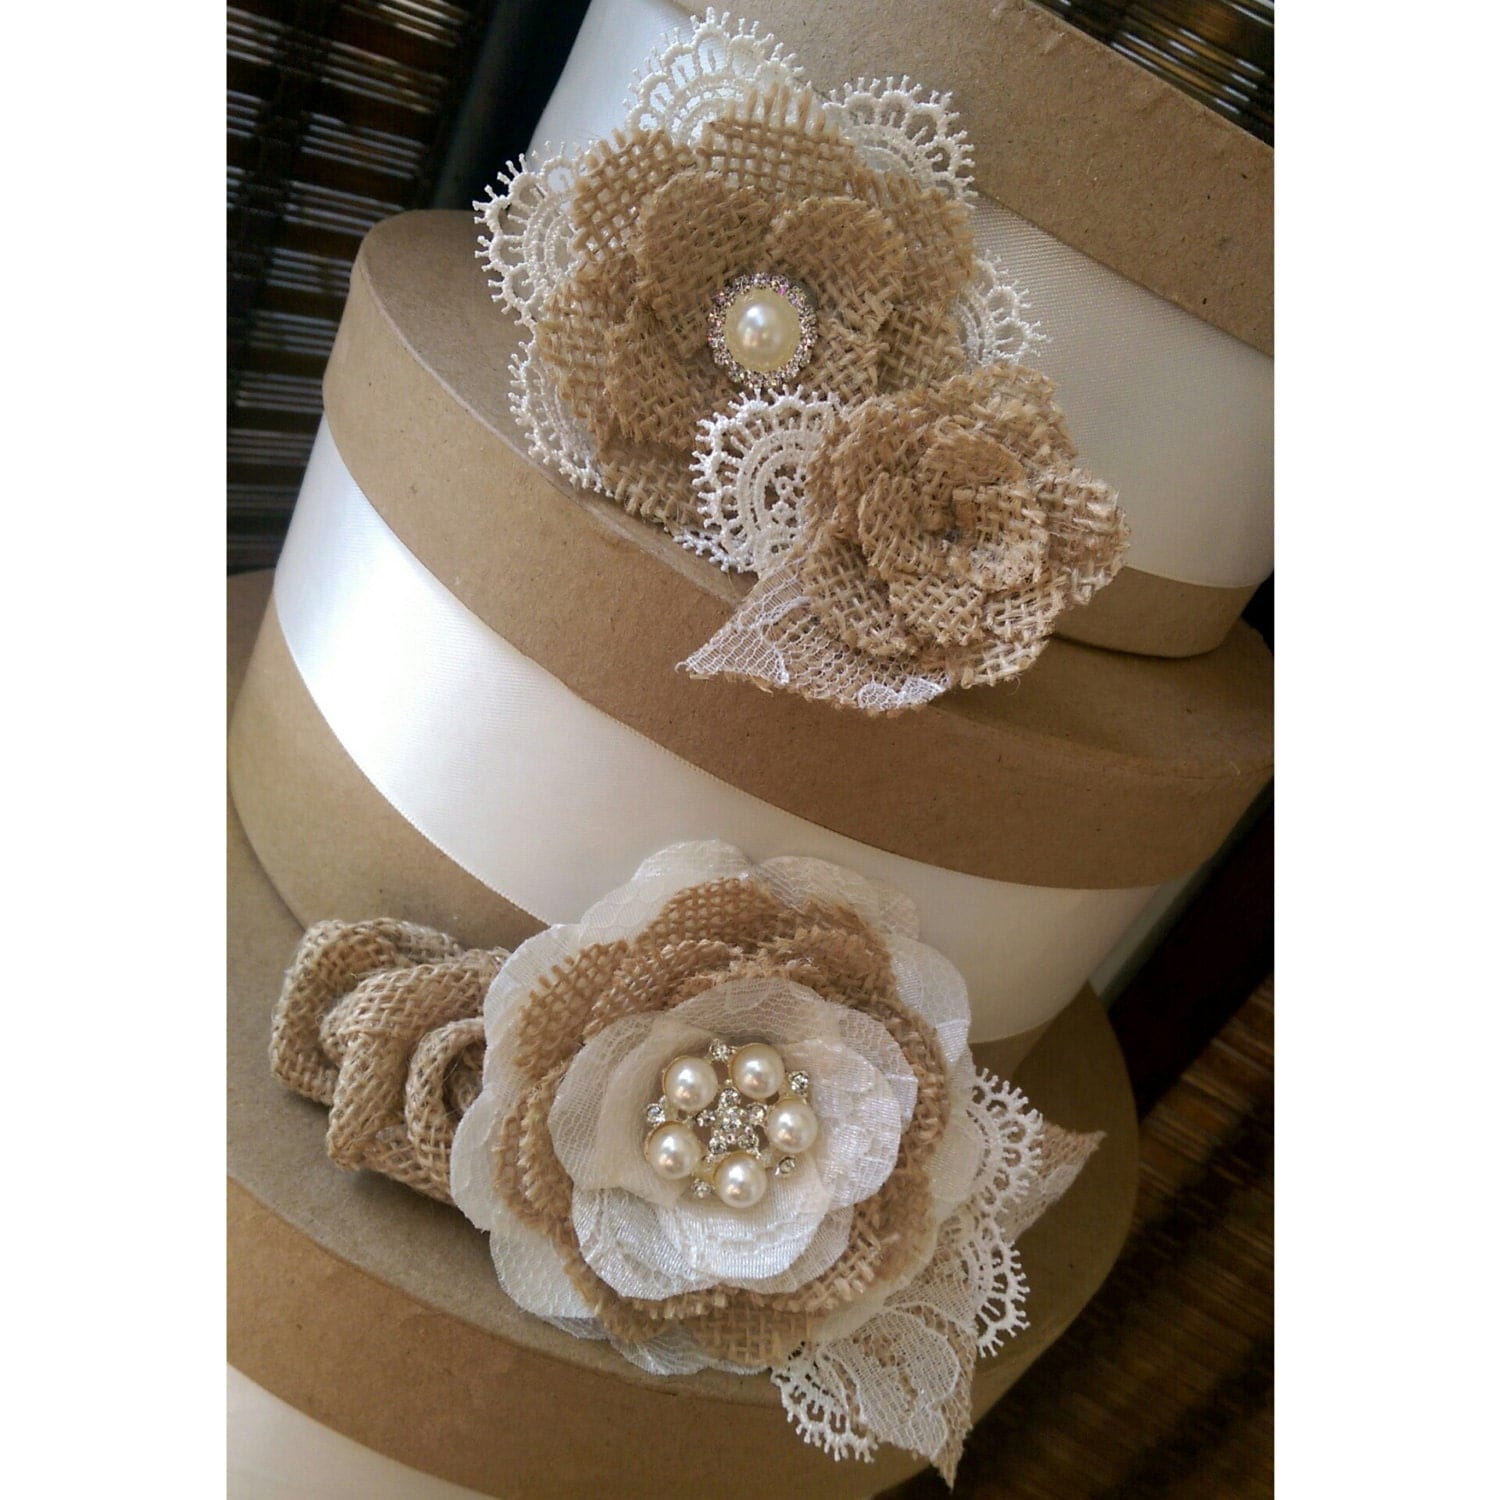 Rustic Burlap And Lace Cake Flowers With Vintage Inspired